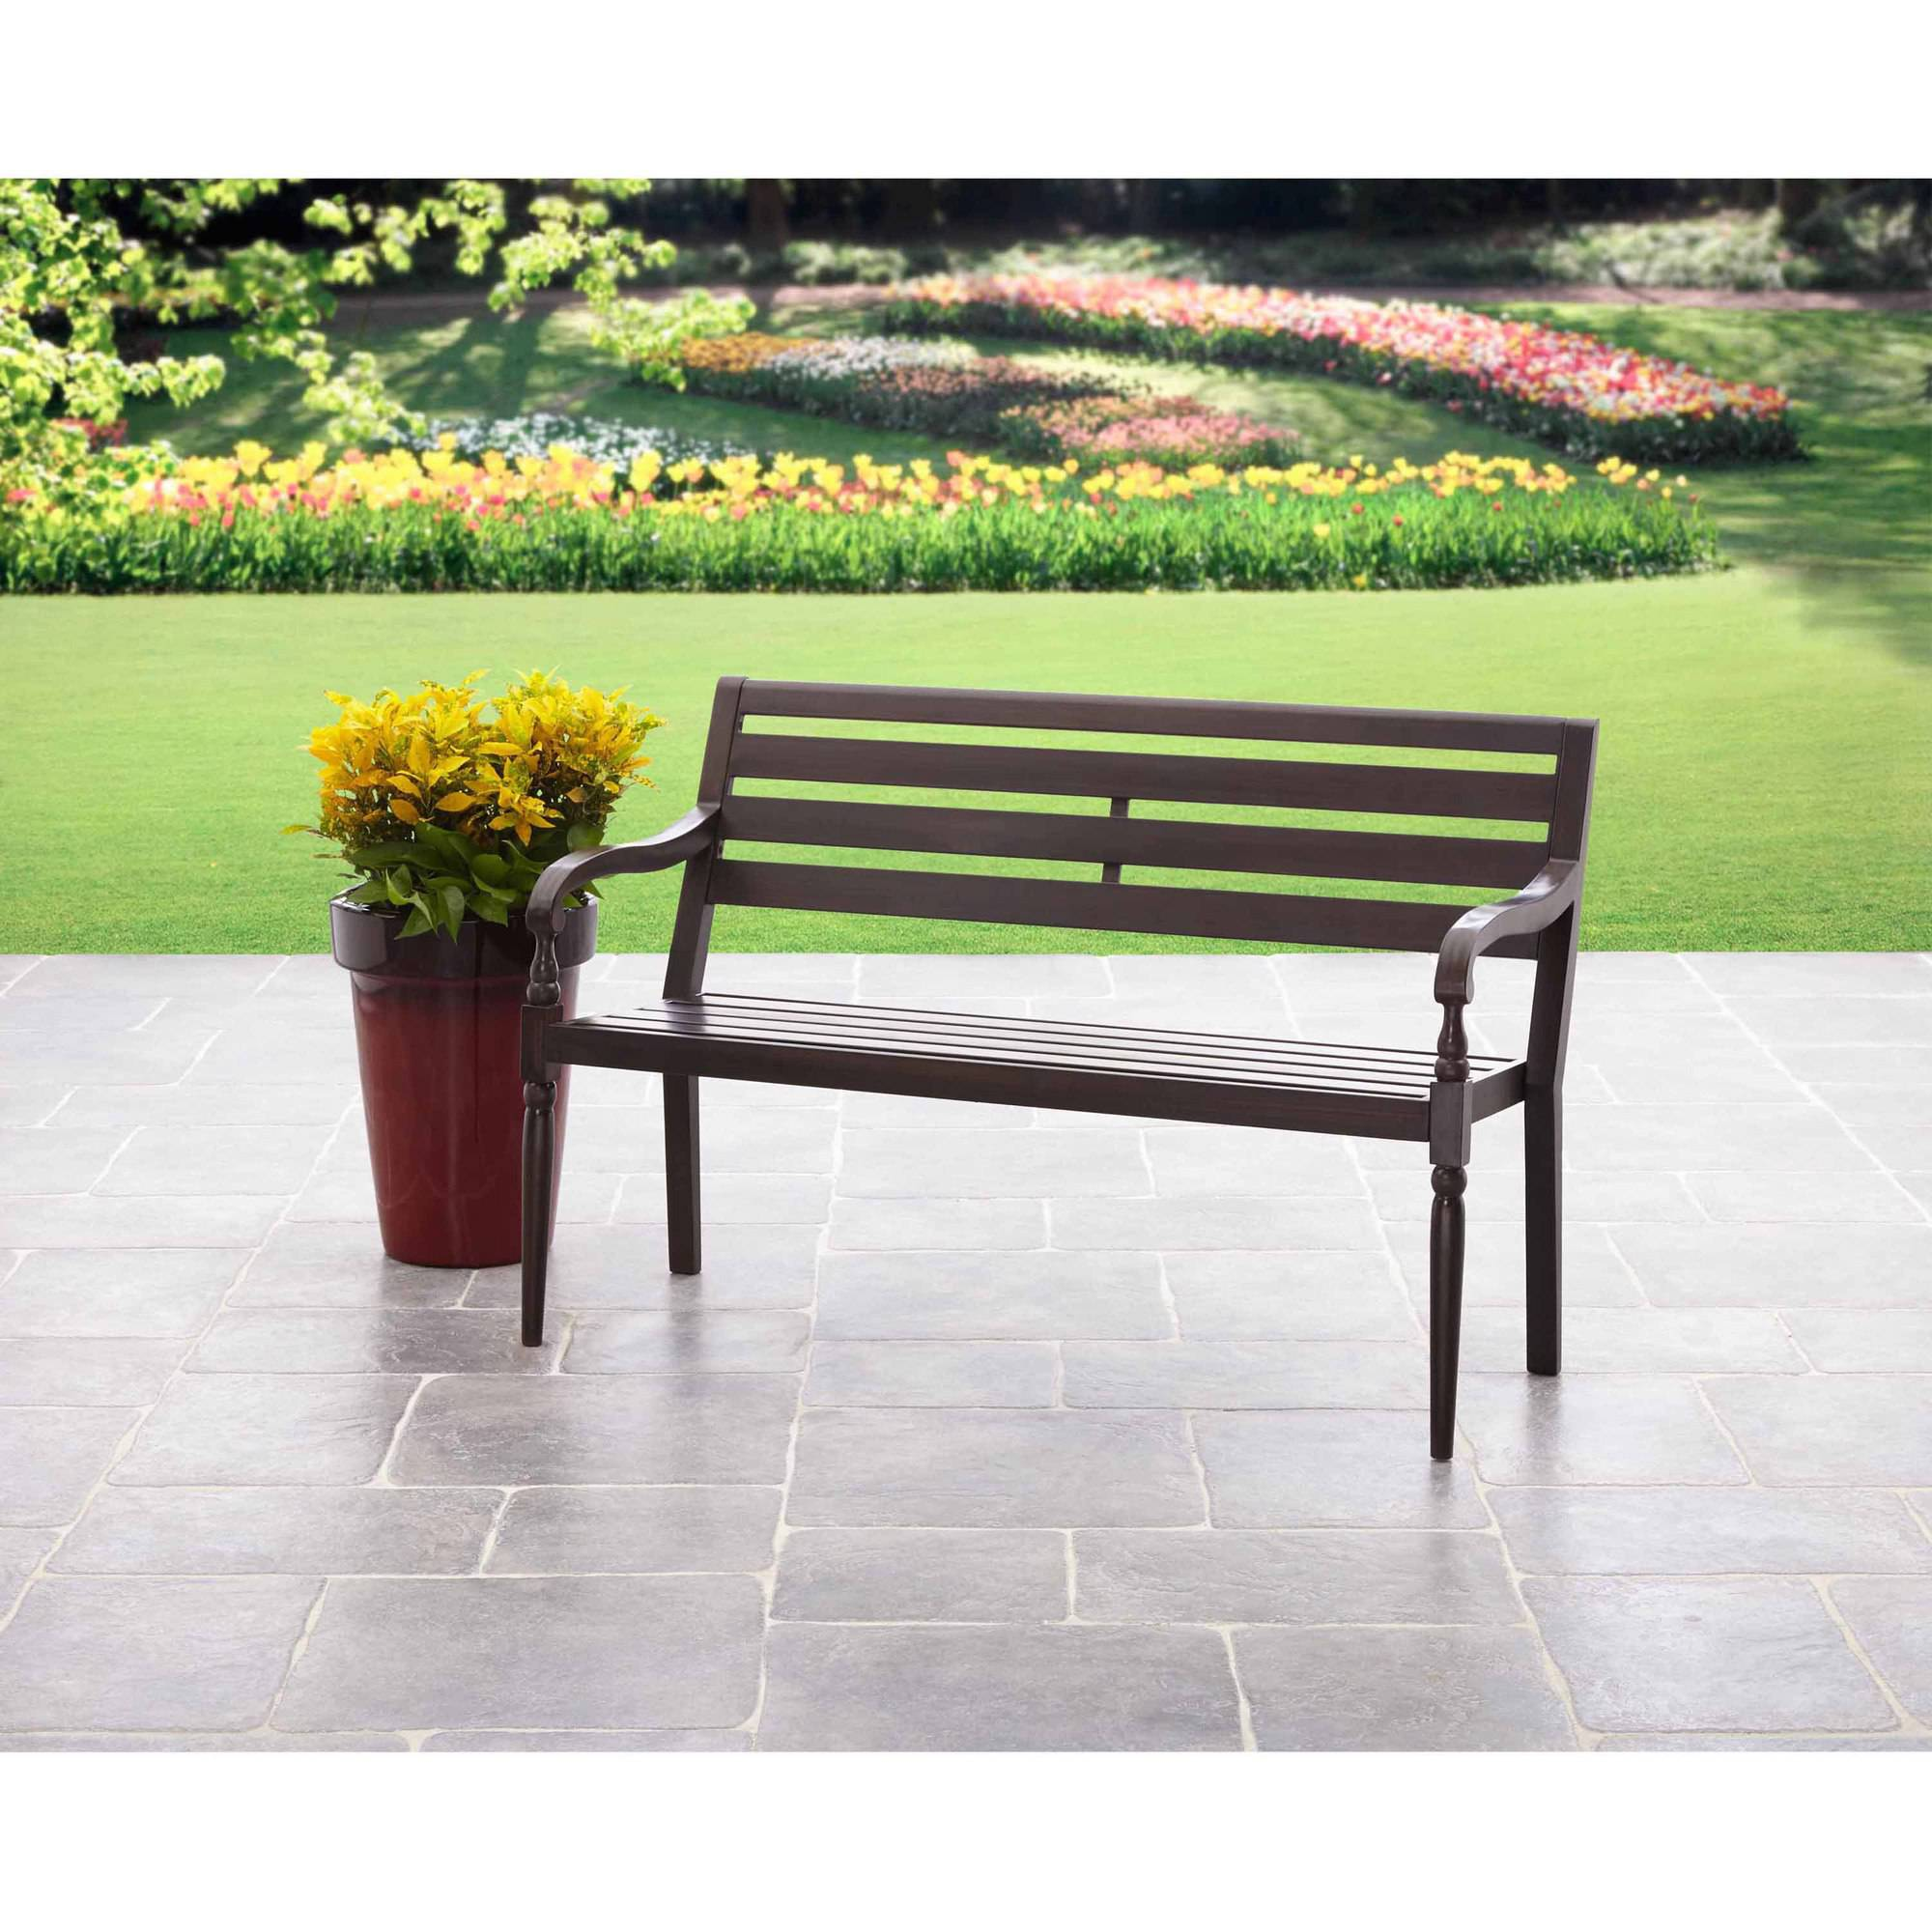 "Garden Furniture Steel bcp 50"" patio garden bench park yard outdoor furniture steel frame"